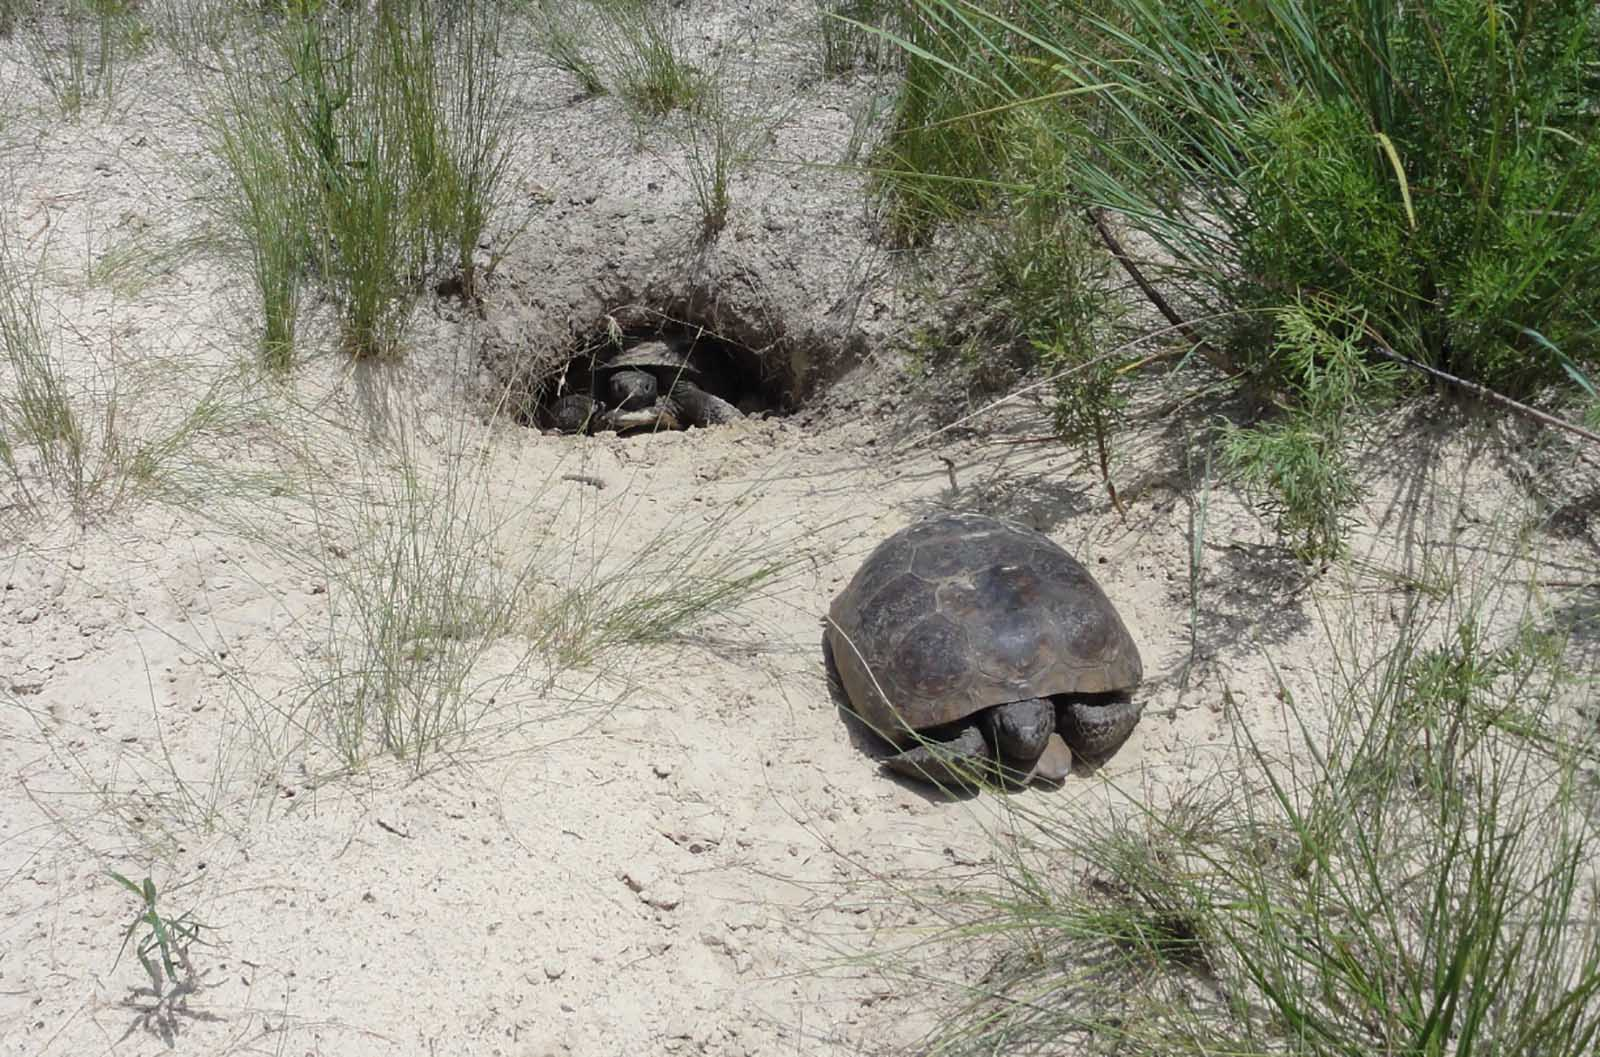 two gopher tortoises, one hiding in shell and another looking from its burrow hole